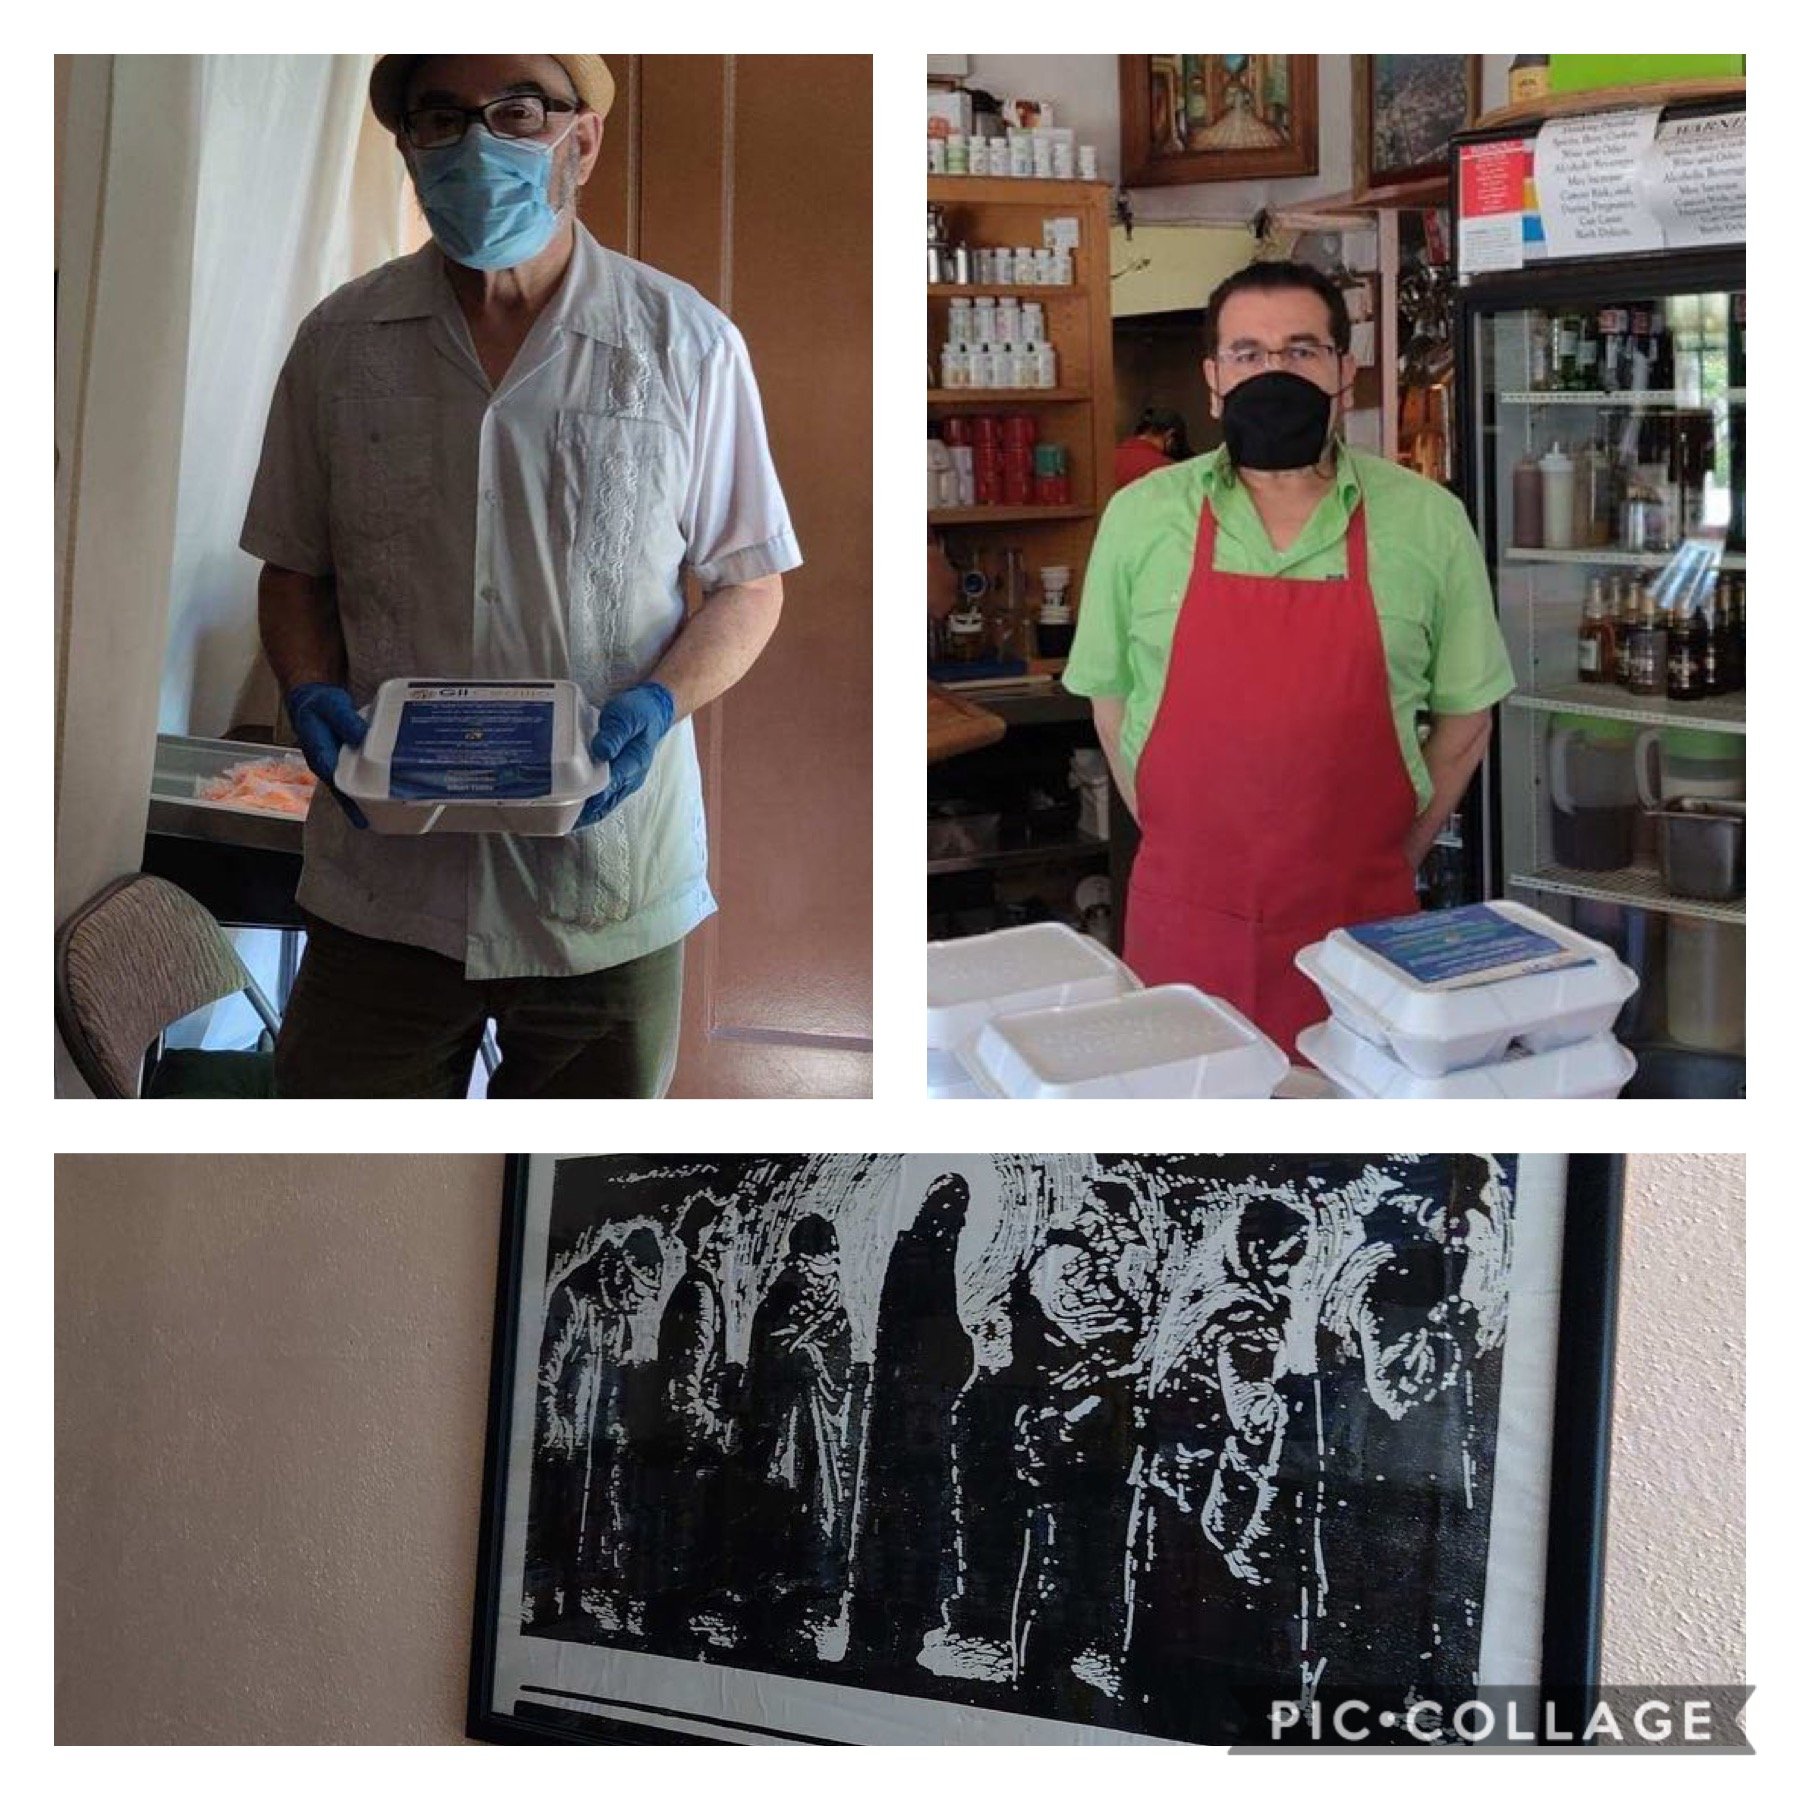 St. Vincent DePaul food bank in Highland Park with the help of Arroyo Arts Collective received Chico's hot meals 5-21-2020 COLLAGE